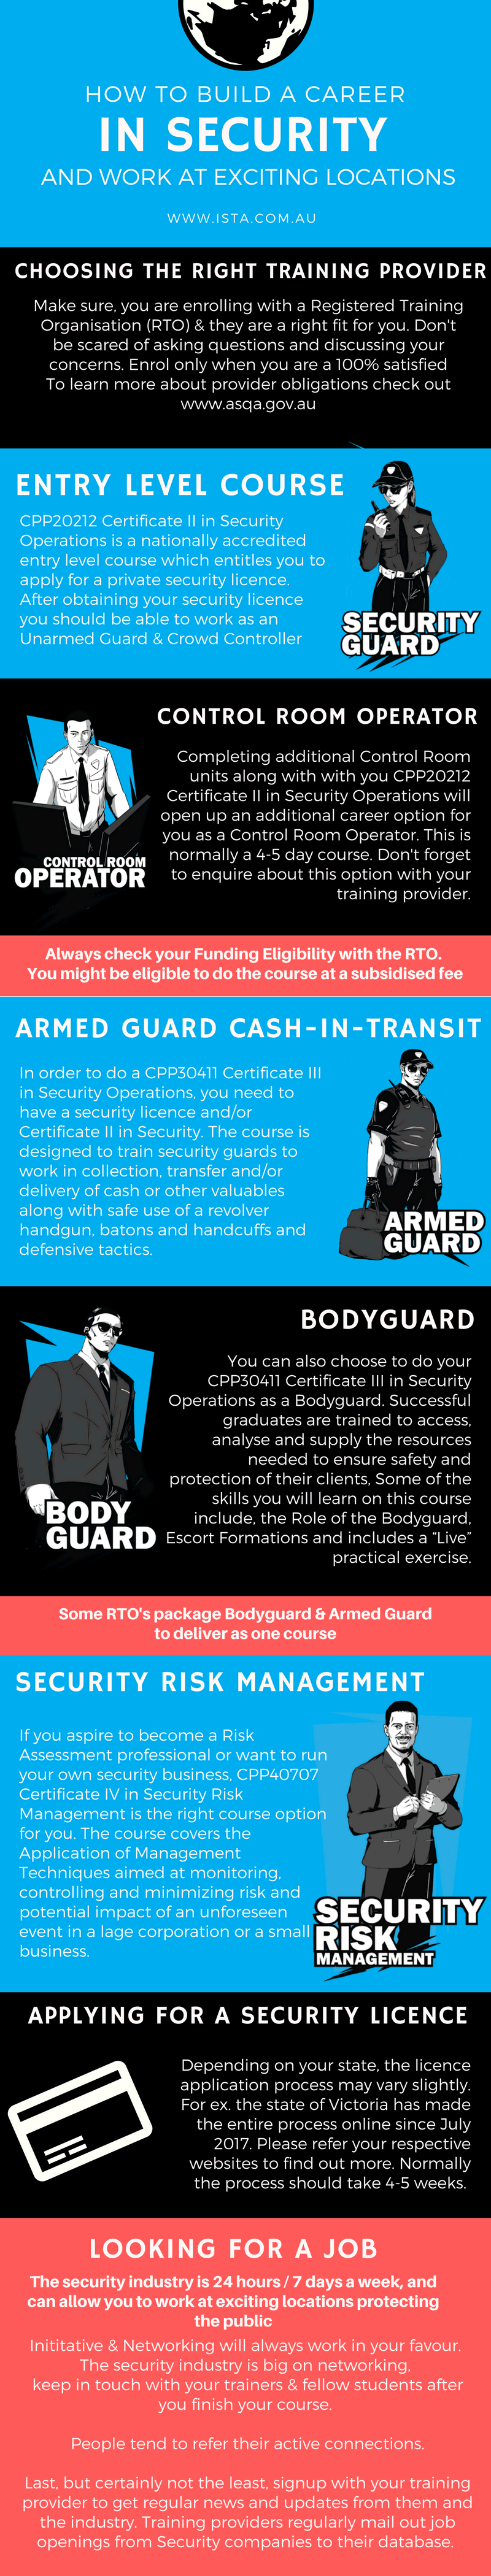 How To Become A Security Guard A Definitive Step By Step Guide